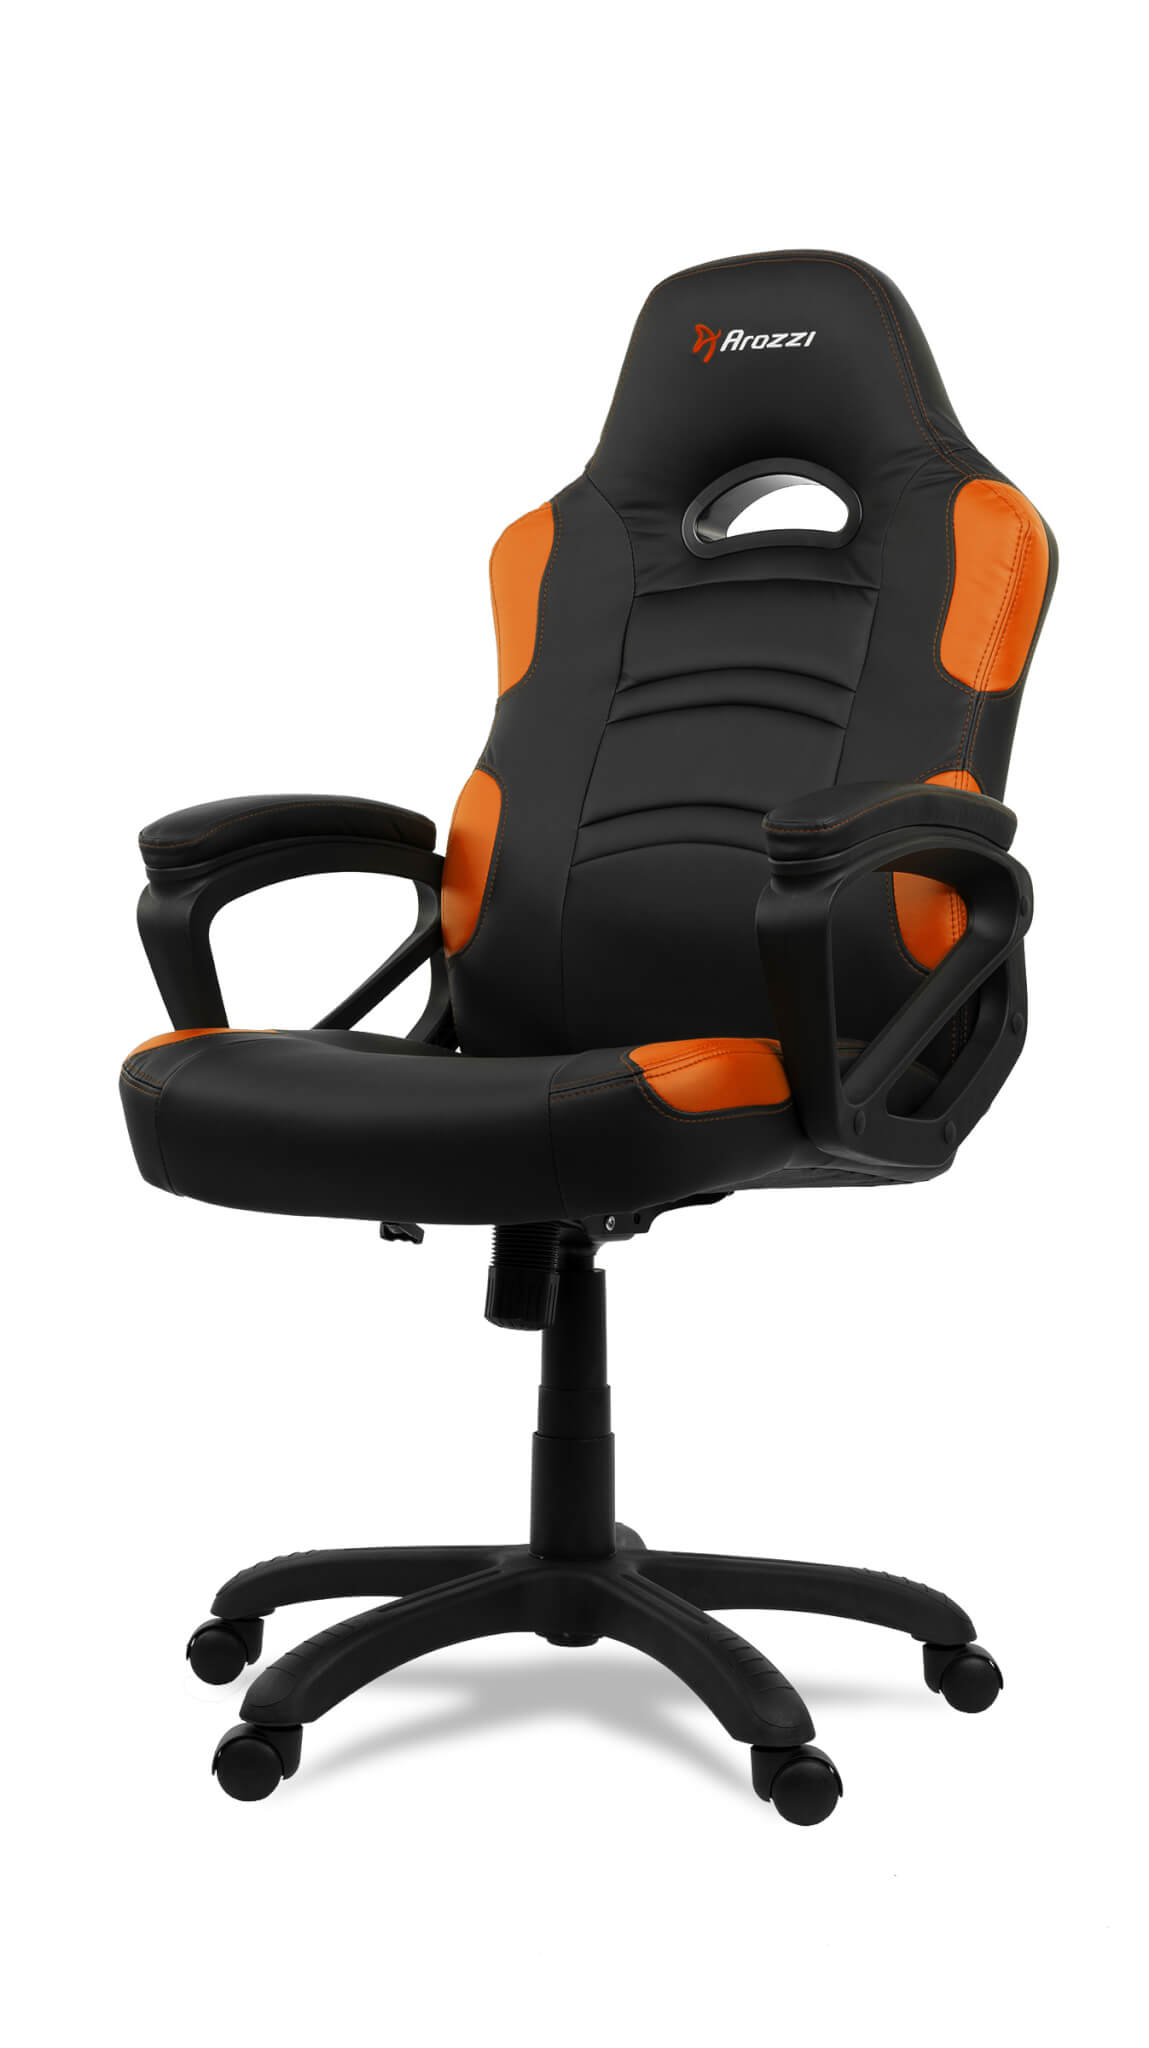 Arozzi Enzo Gaming Chair Review: Sleek as a Ferrari